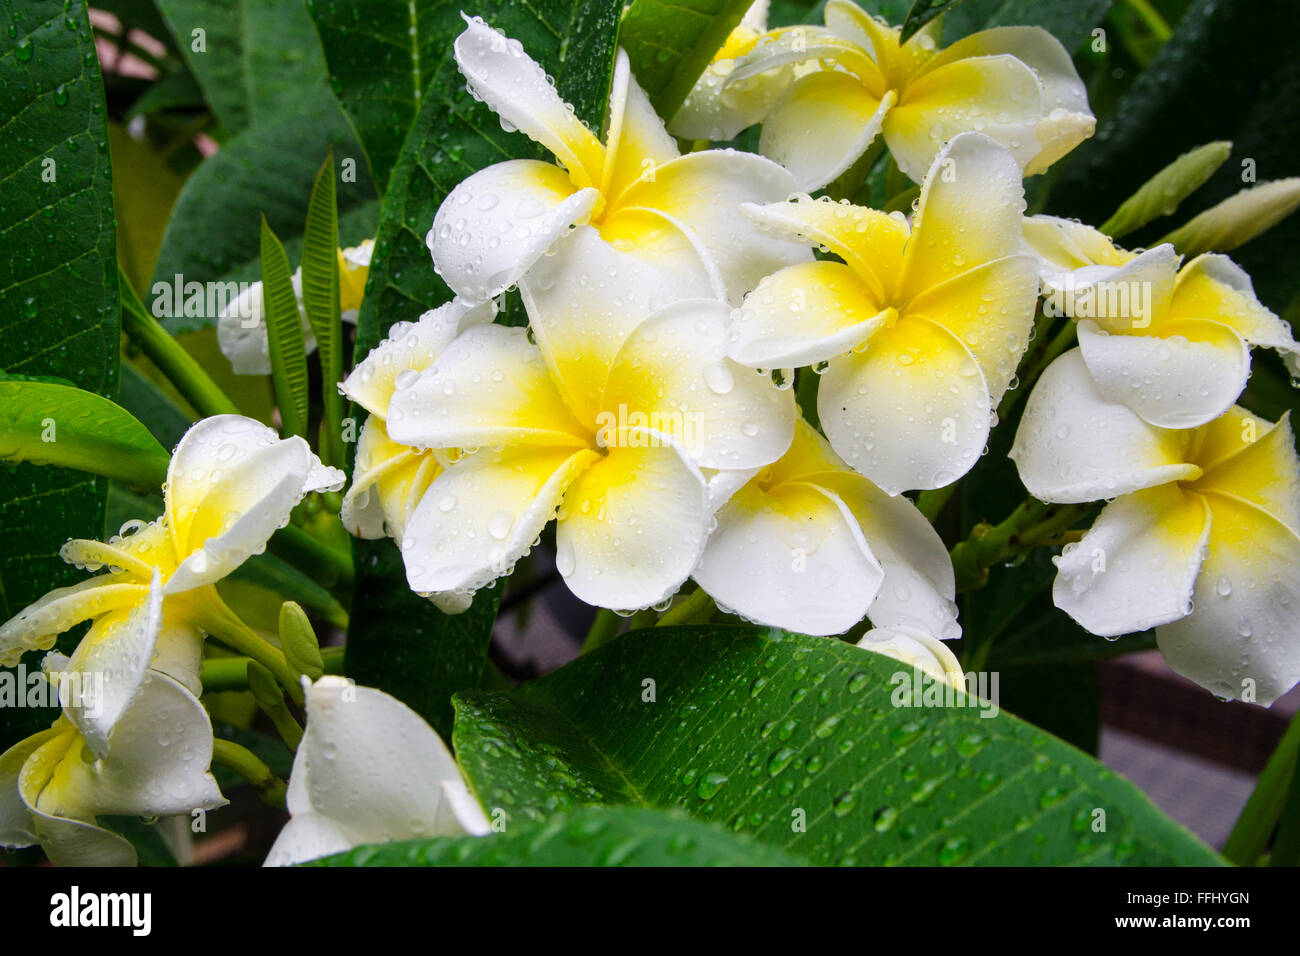 Frangipani or plumeria flower in drops of water after rain stock frangipani or plumeria flower in drops of water after rain traditional flowers hawaiian culture fiji bali laos thailand st izmirmasajfo